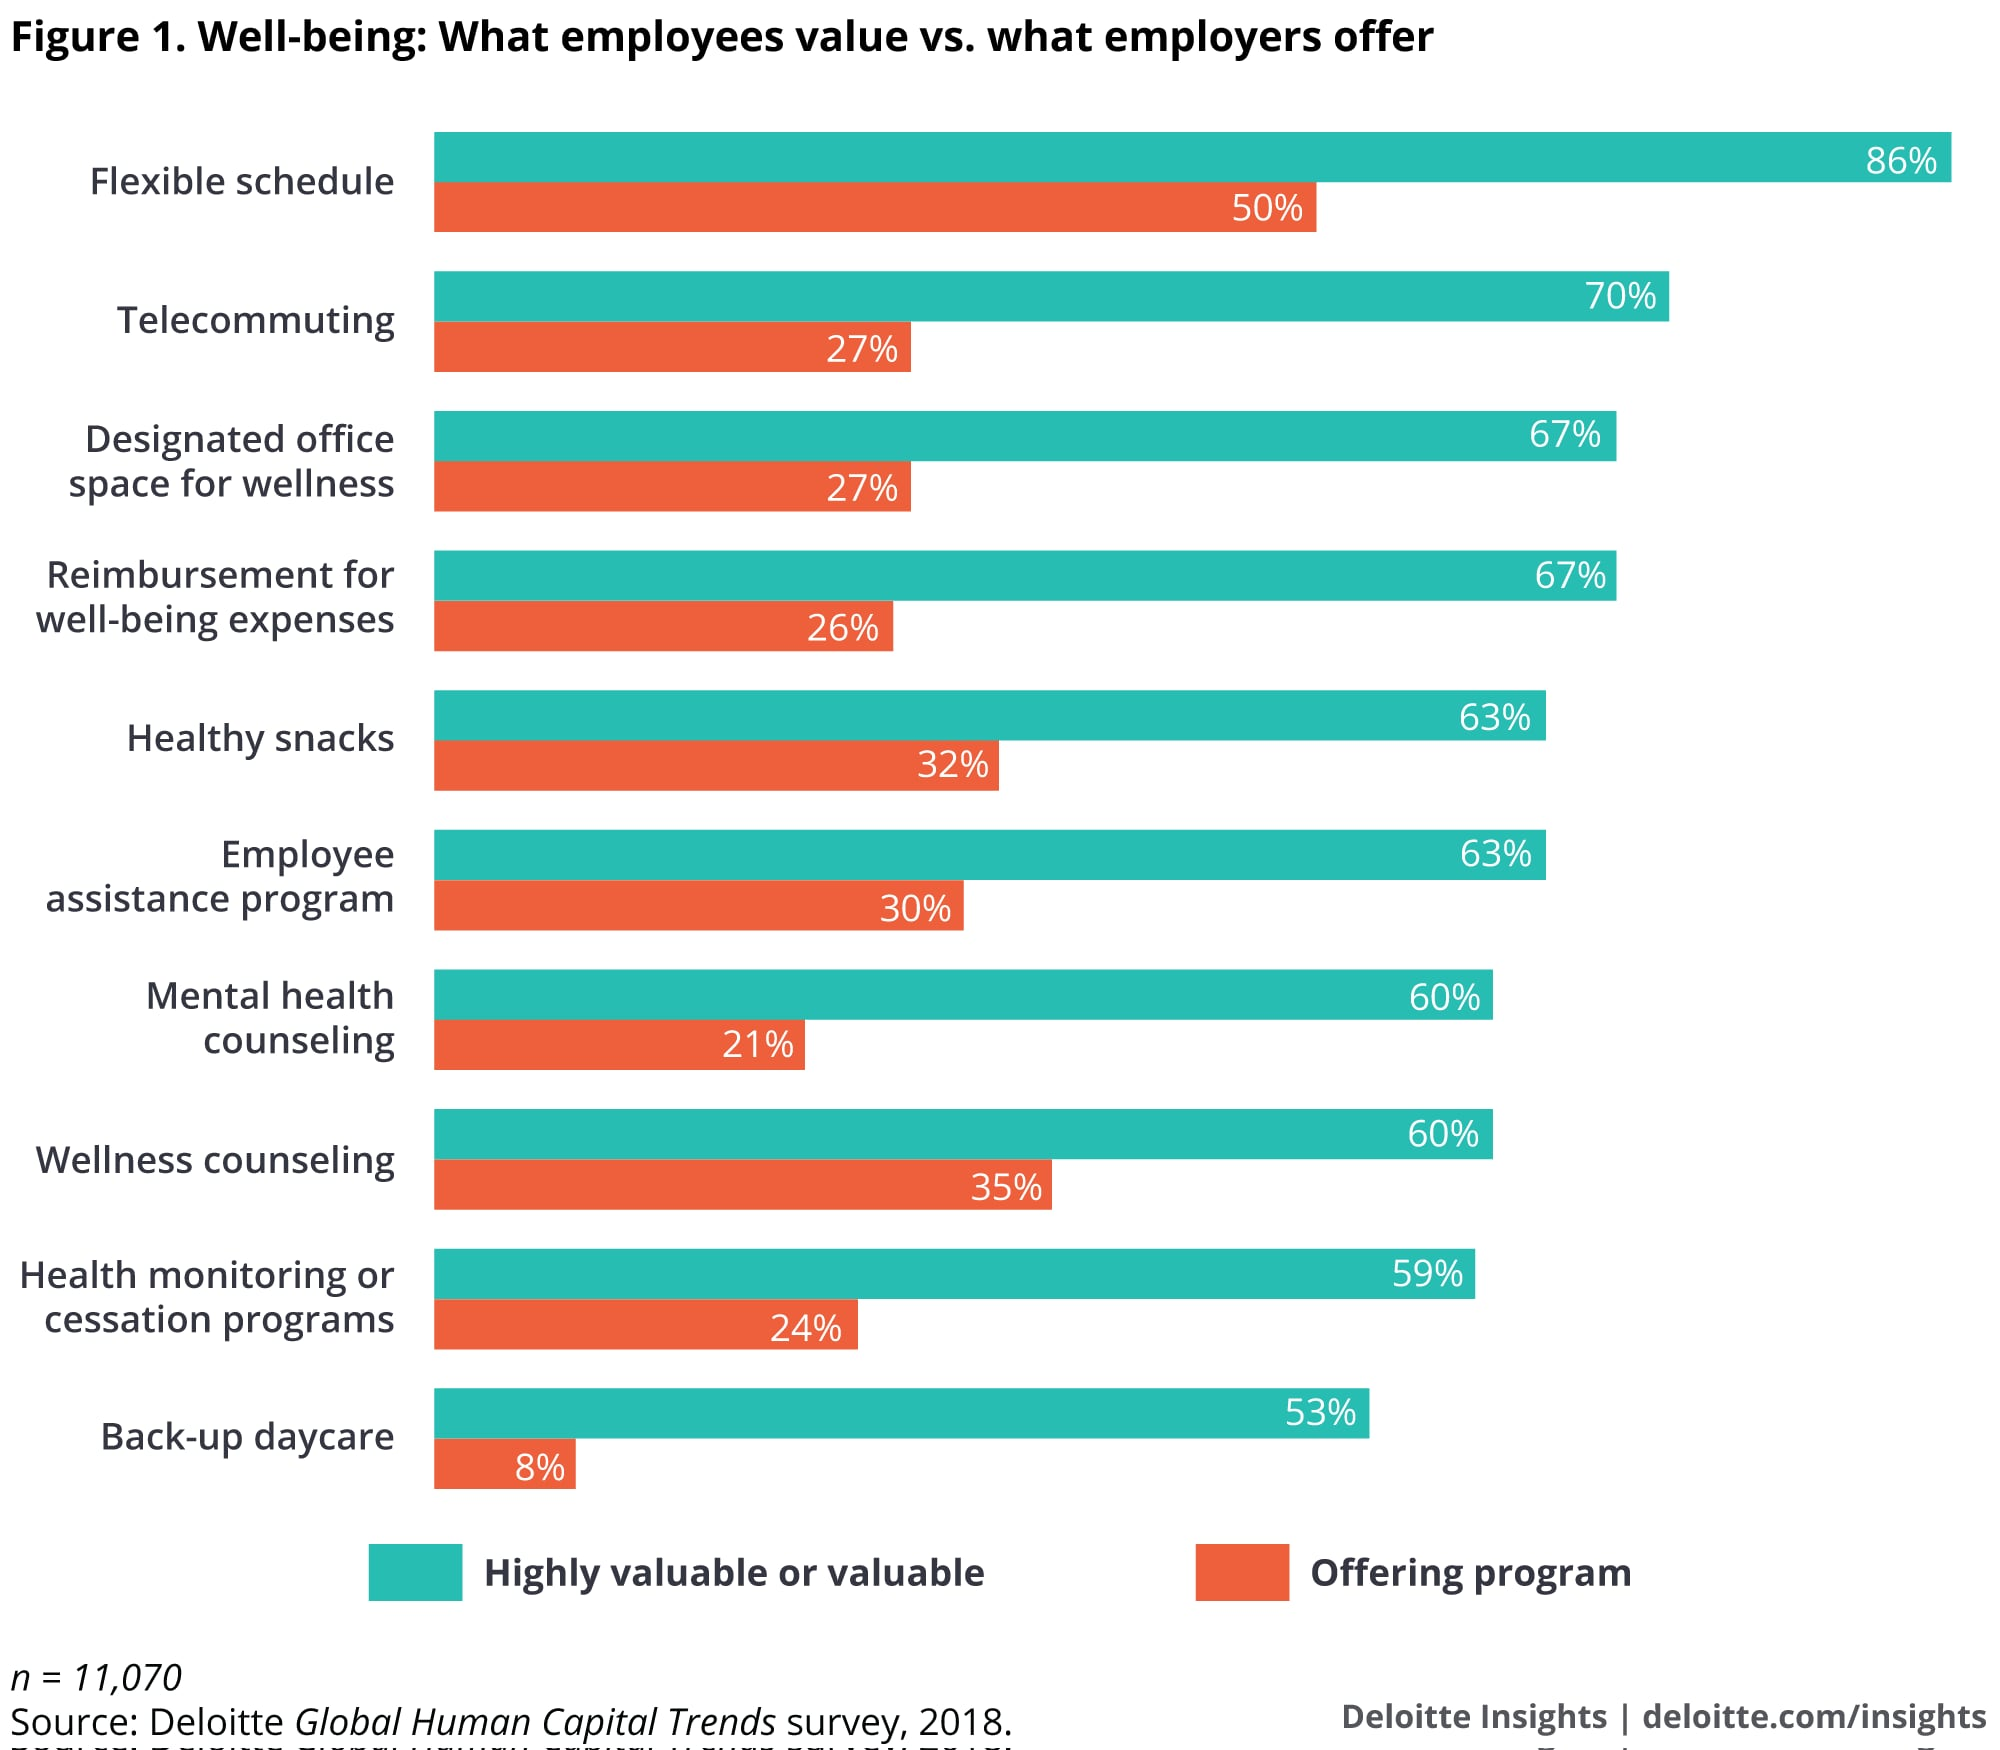 Well-being: What employees value vs. what employers offer